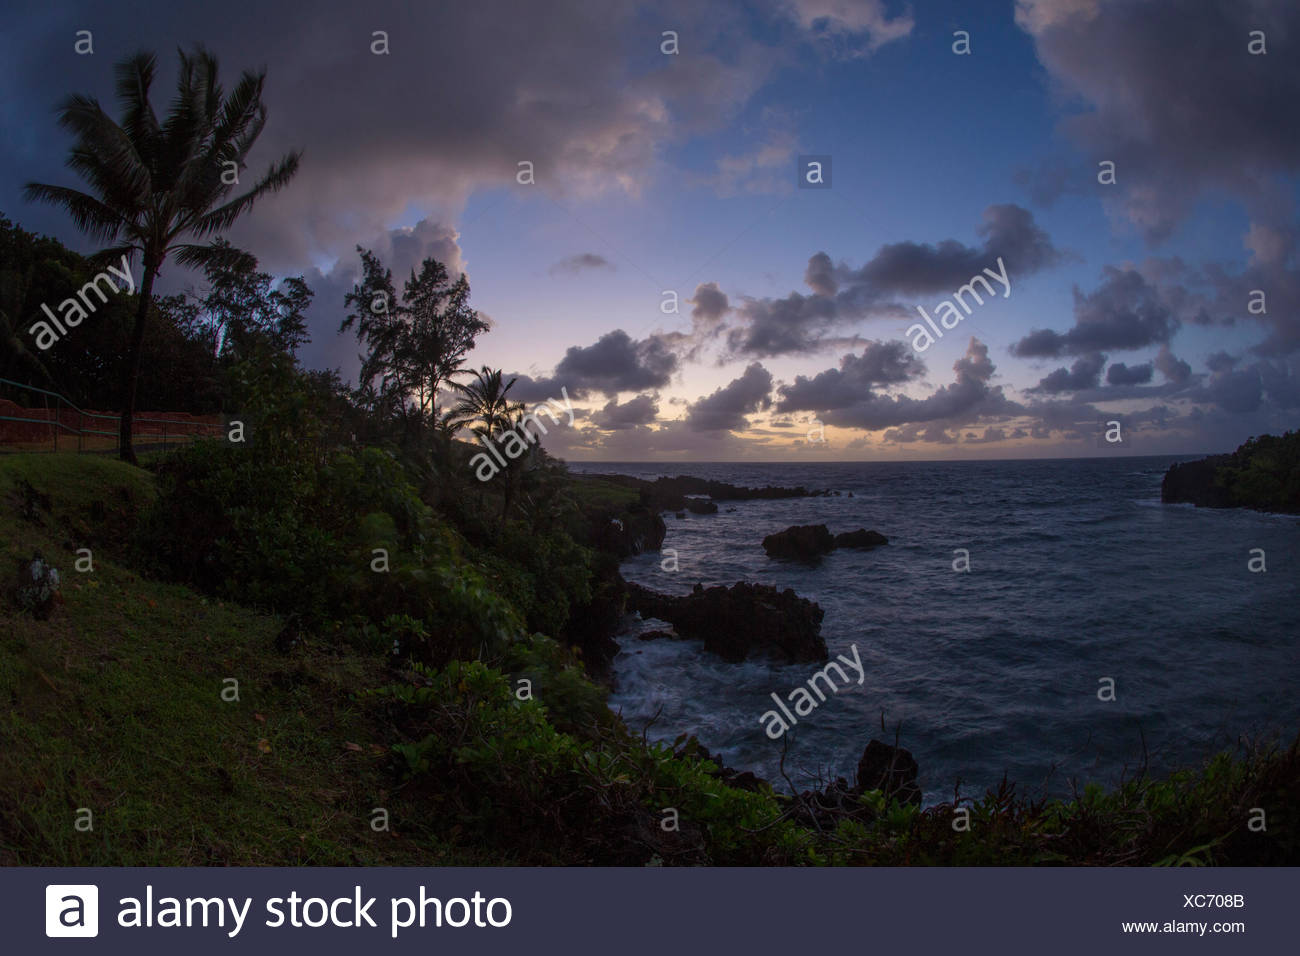 Maui,Wai'anapanapa State Park,côte,USA,New York,,Nord,soirée, Photo Stock